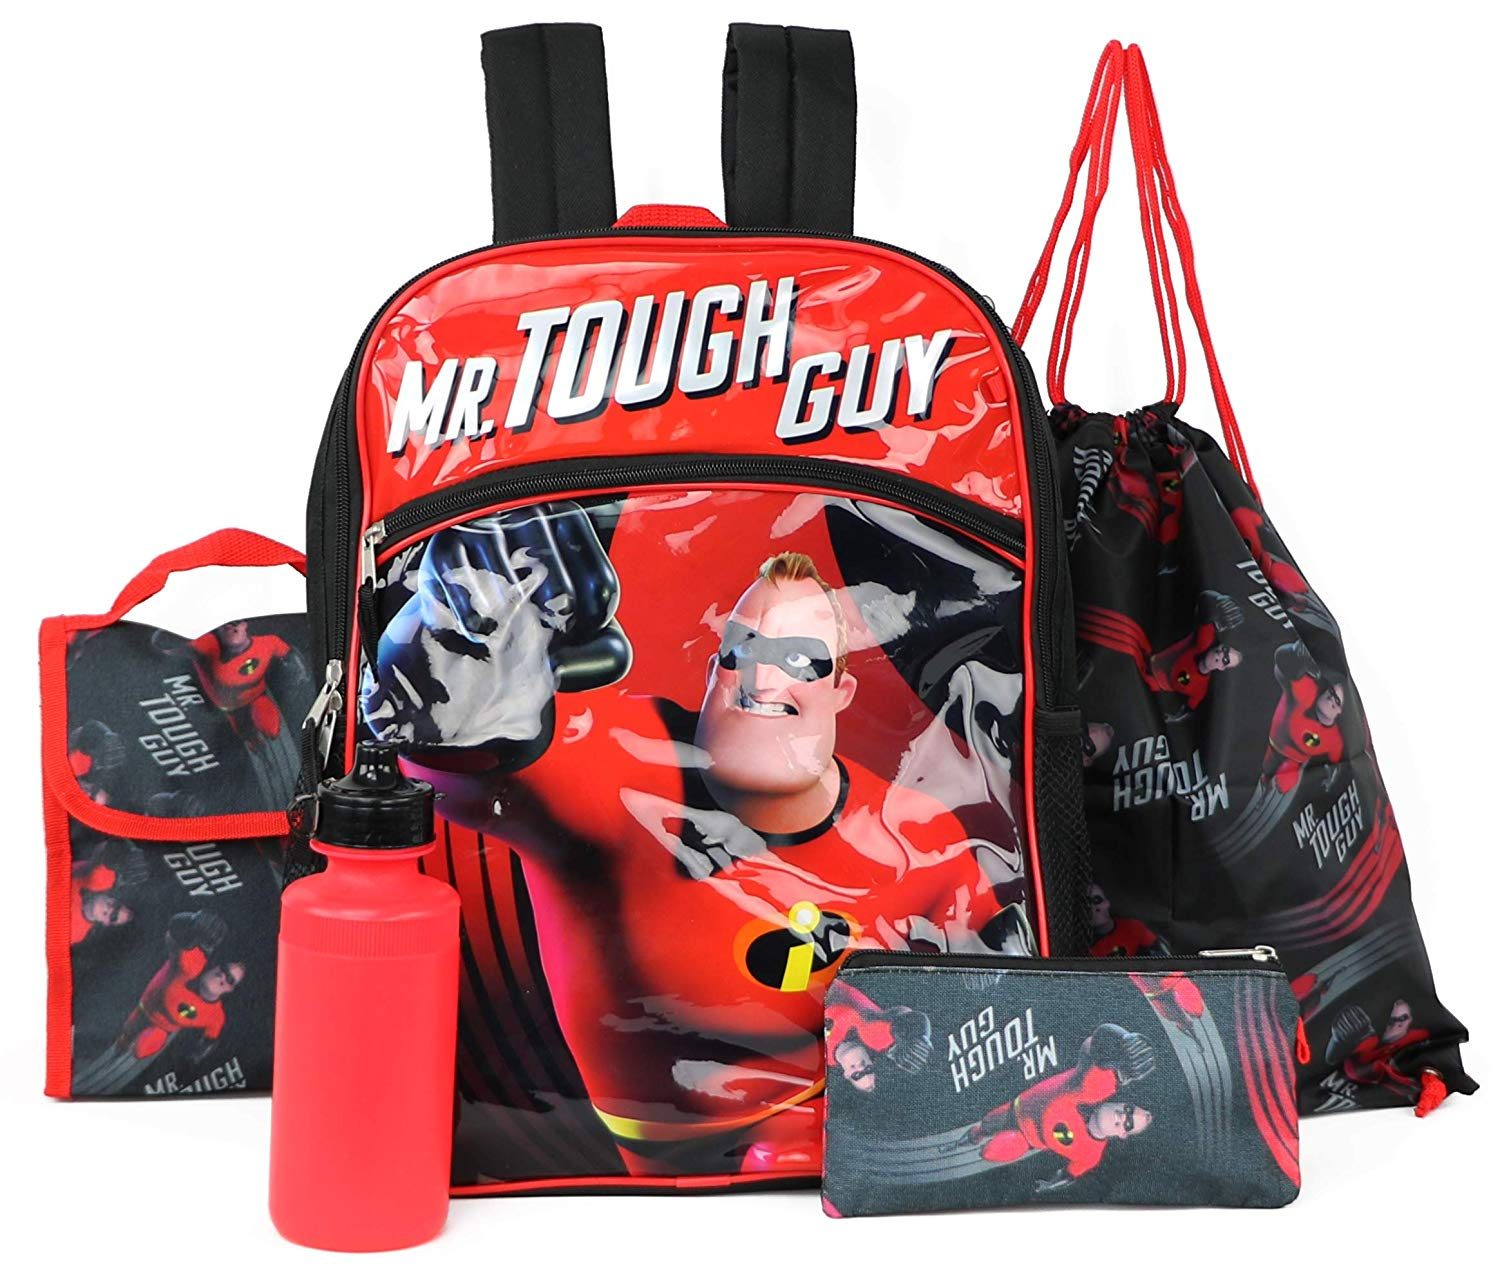 ebc022b3e82a Get Quotations · Incredibles 2 Backpack Kids 5 PC Lunch Box Water Bottle  Cinch Bag School Set